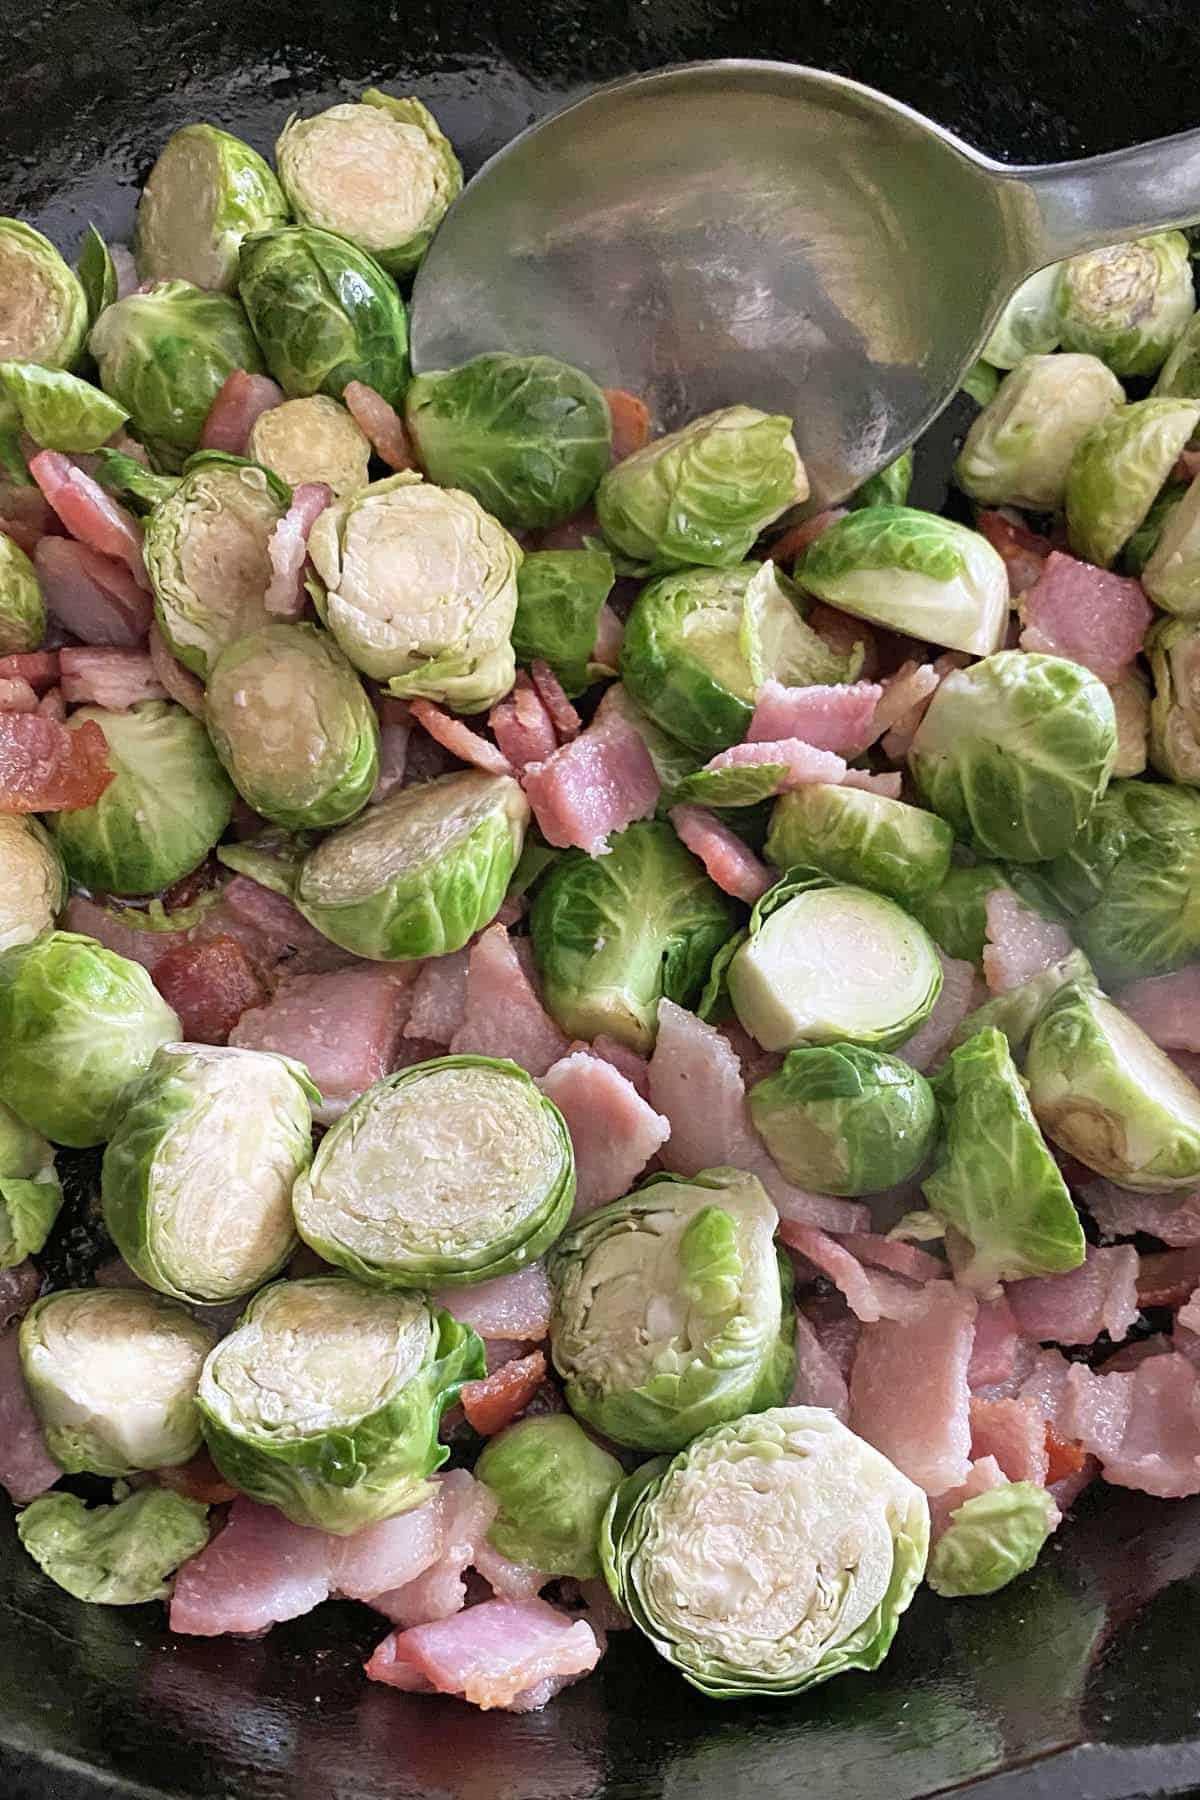 Partially cooked steamed Brussel sprouts with partially cooked bacon pieces in a skillet with a spoon